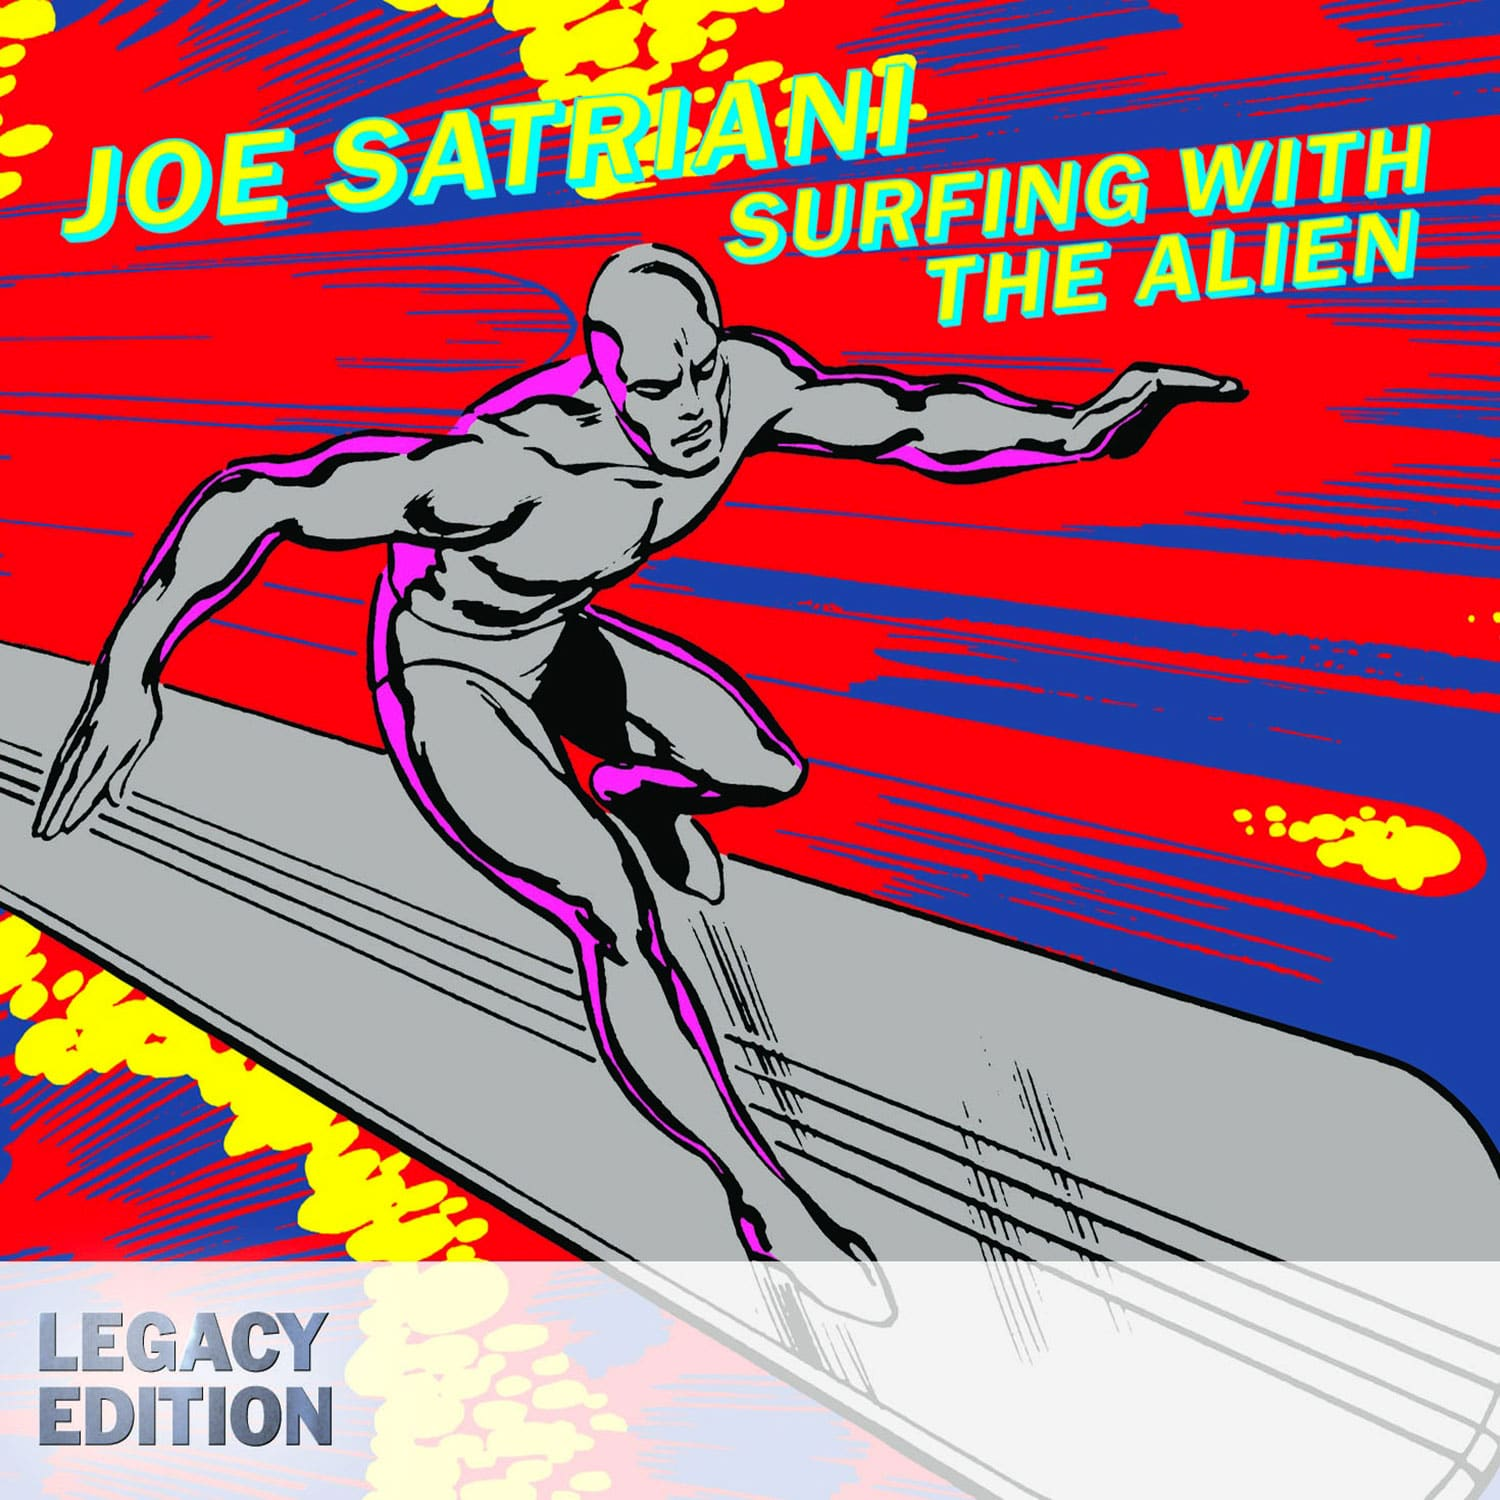 Surfing With The Alien Legacy 20th Joe Satriani Universe